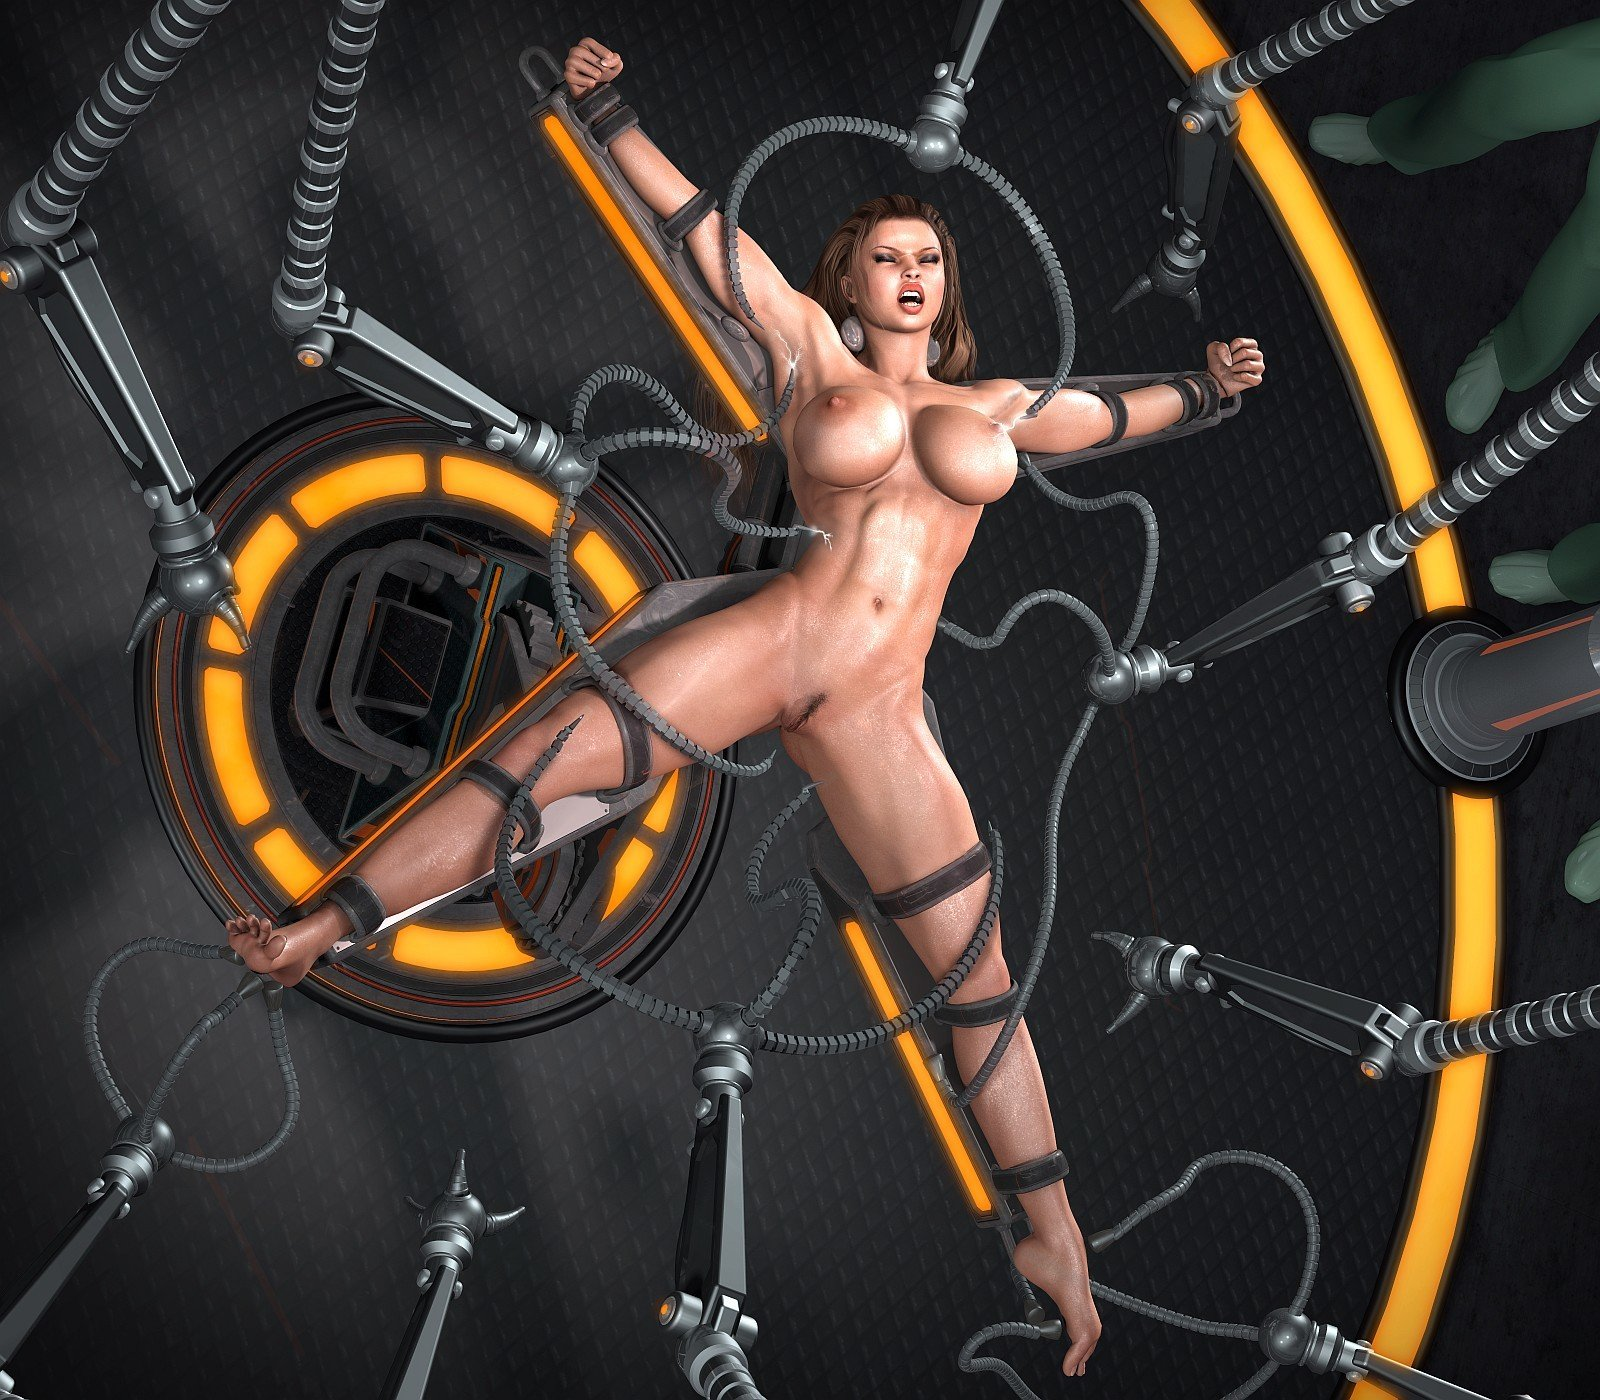 Has sex bondage spy girl anal domination